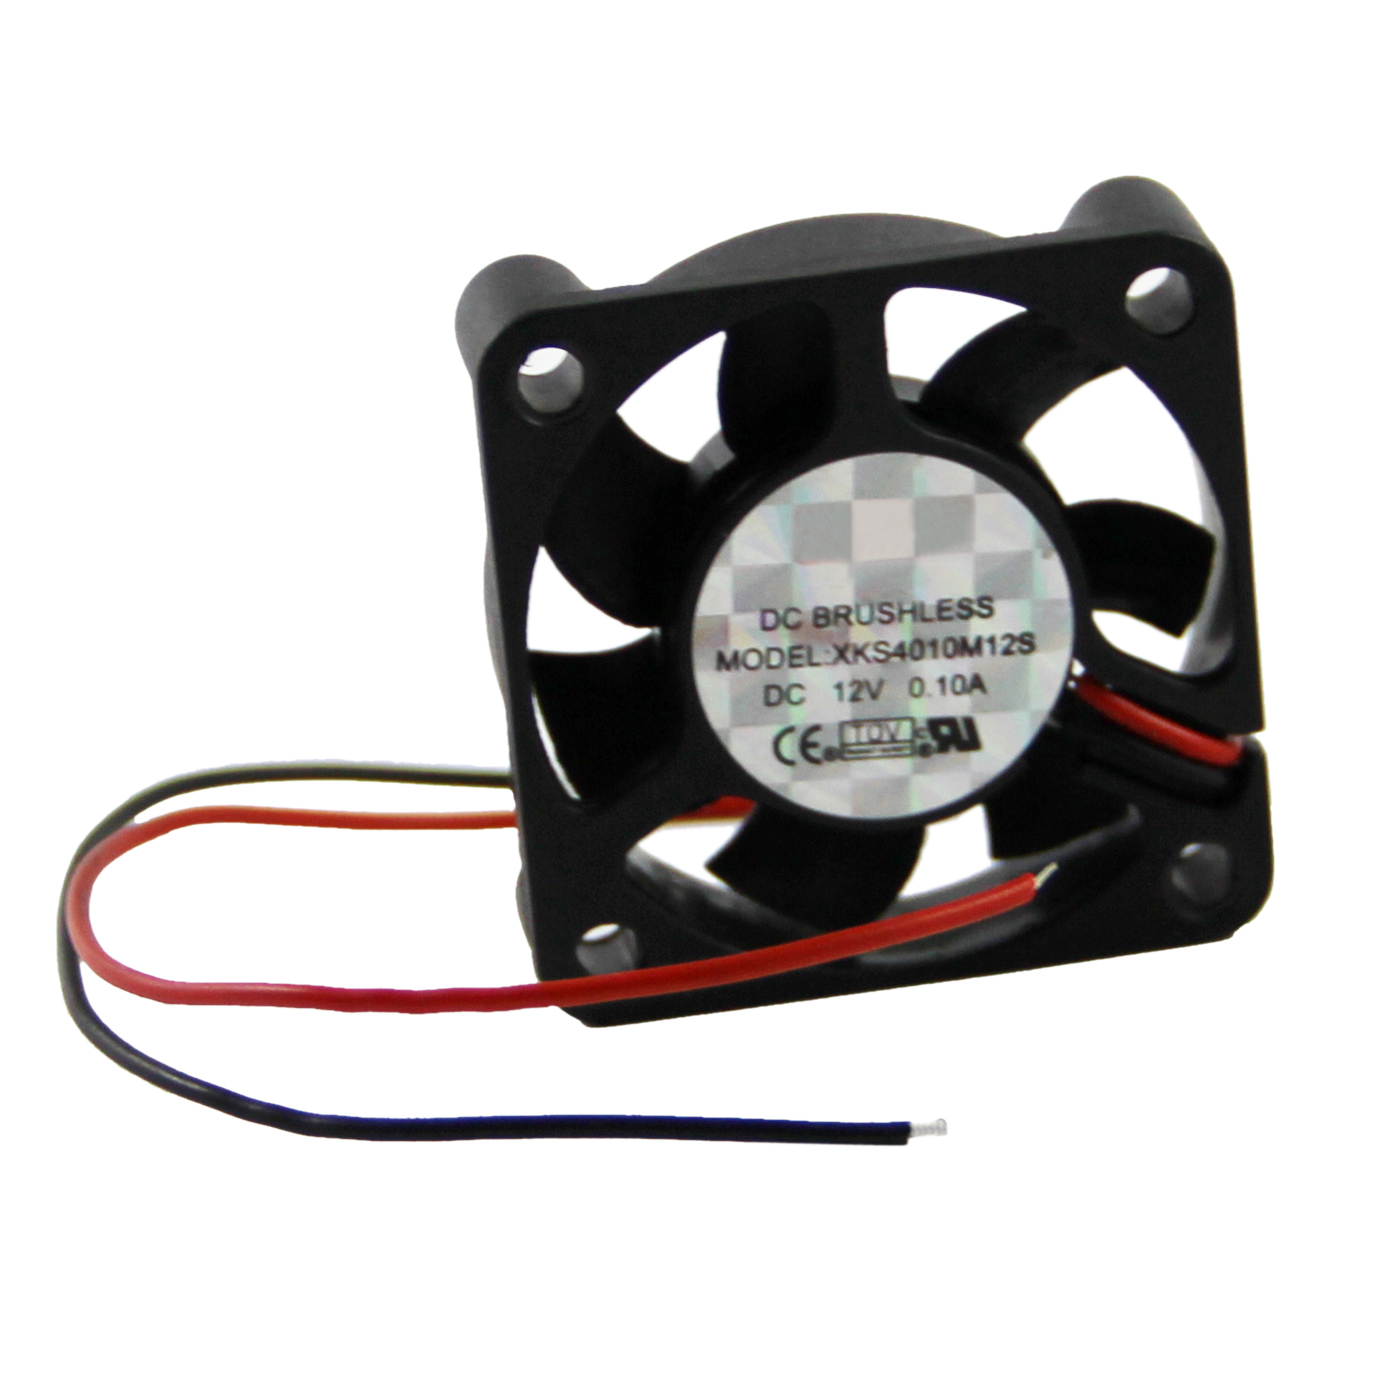 2 Pcs 2 Pin 40mm Square PC Computer Cooler Cooling Fan DC 12V gdstime 2 pcs 4010 12v 40x40x10mm brushless dc fan 40mm pc computer case cooling fan 2 0 2 pin cooler 4cm 9 blades